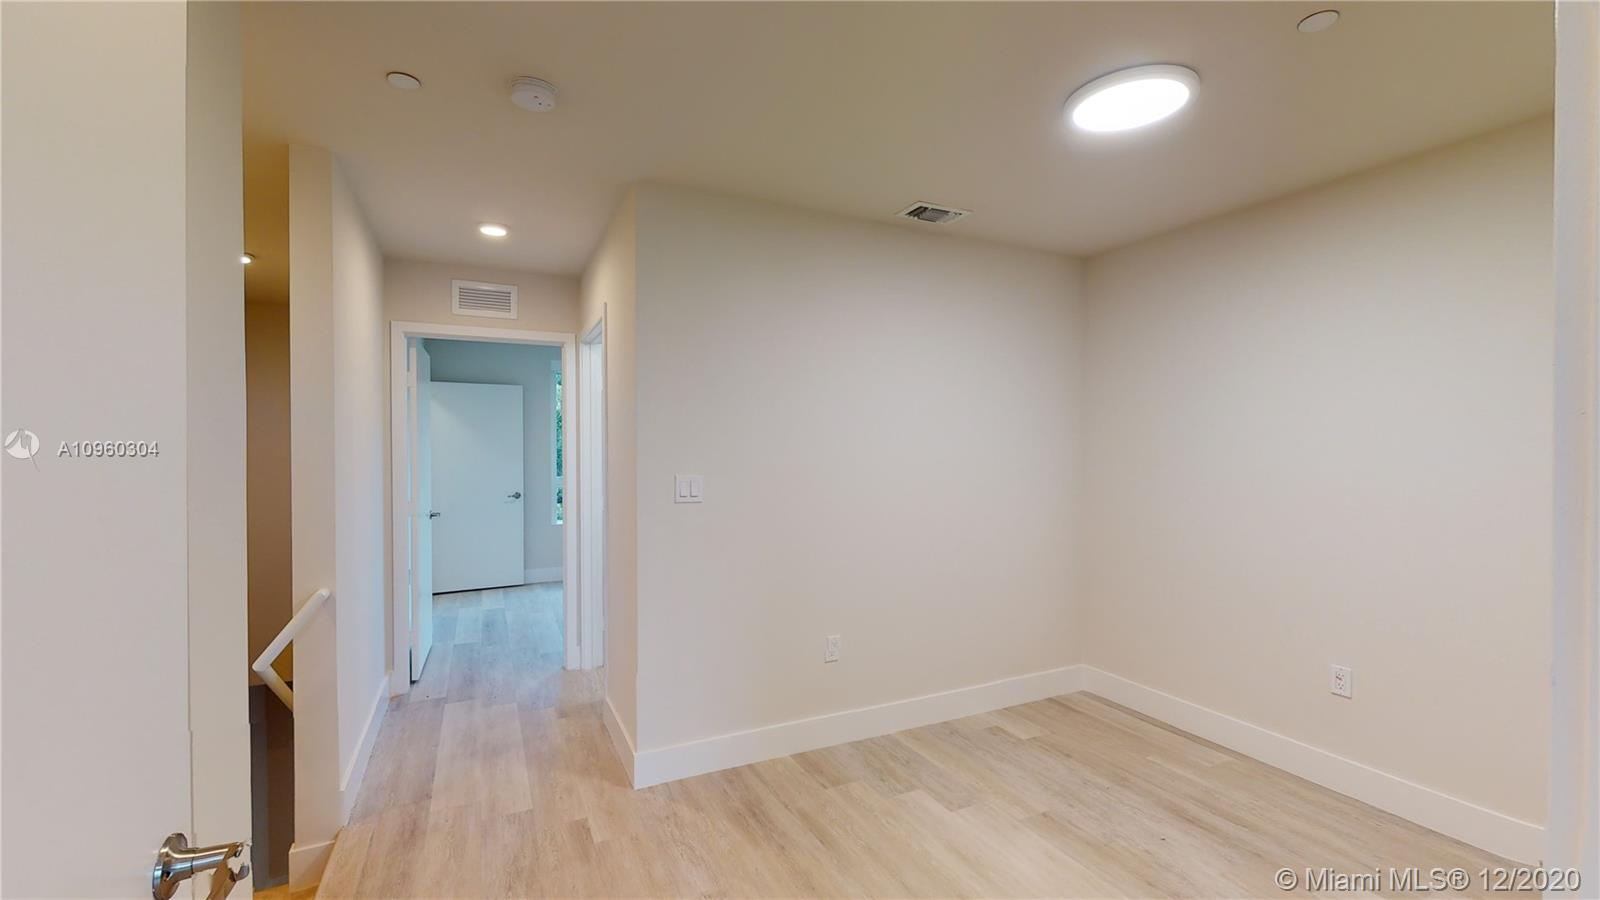 2535 NE 193 Street # 2224, Miami, Florida 33180, 2 Bedrooms Bedrooms, ,3 BathroomsBathrooms,Residential Lease,For Rent,2535 NE 193 Street # 2224,A10960304